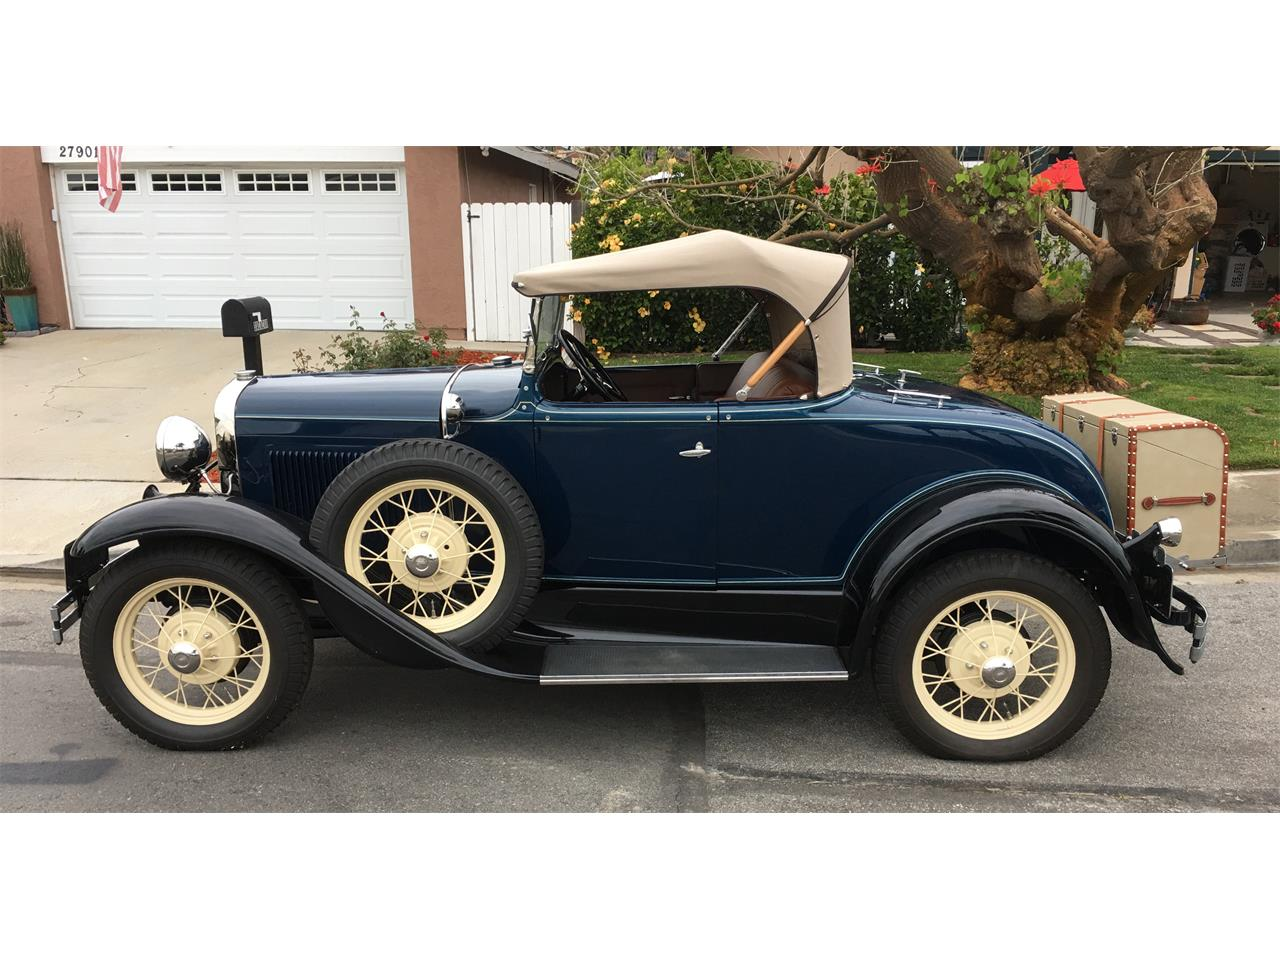 Large Picture of Classic 1931 Ford Model A - $39,999.99 - O8M8